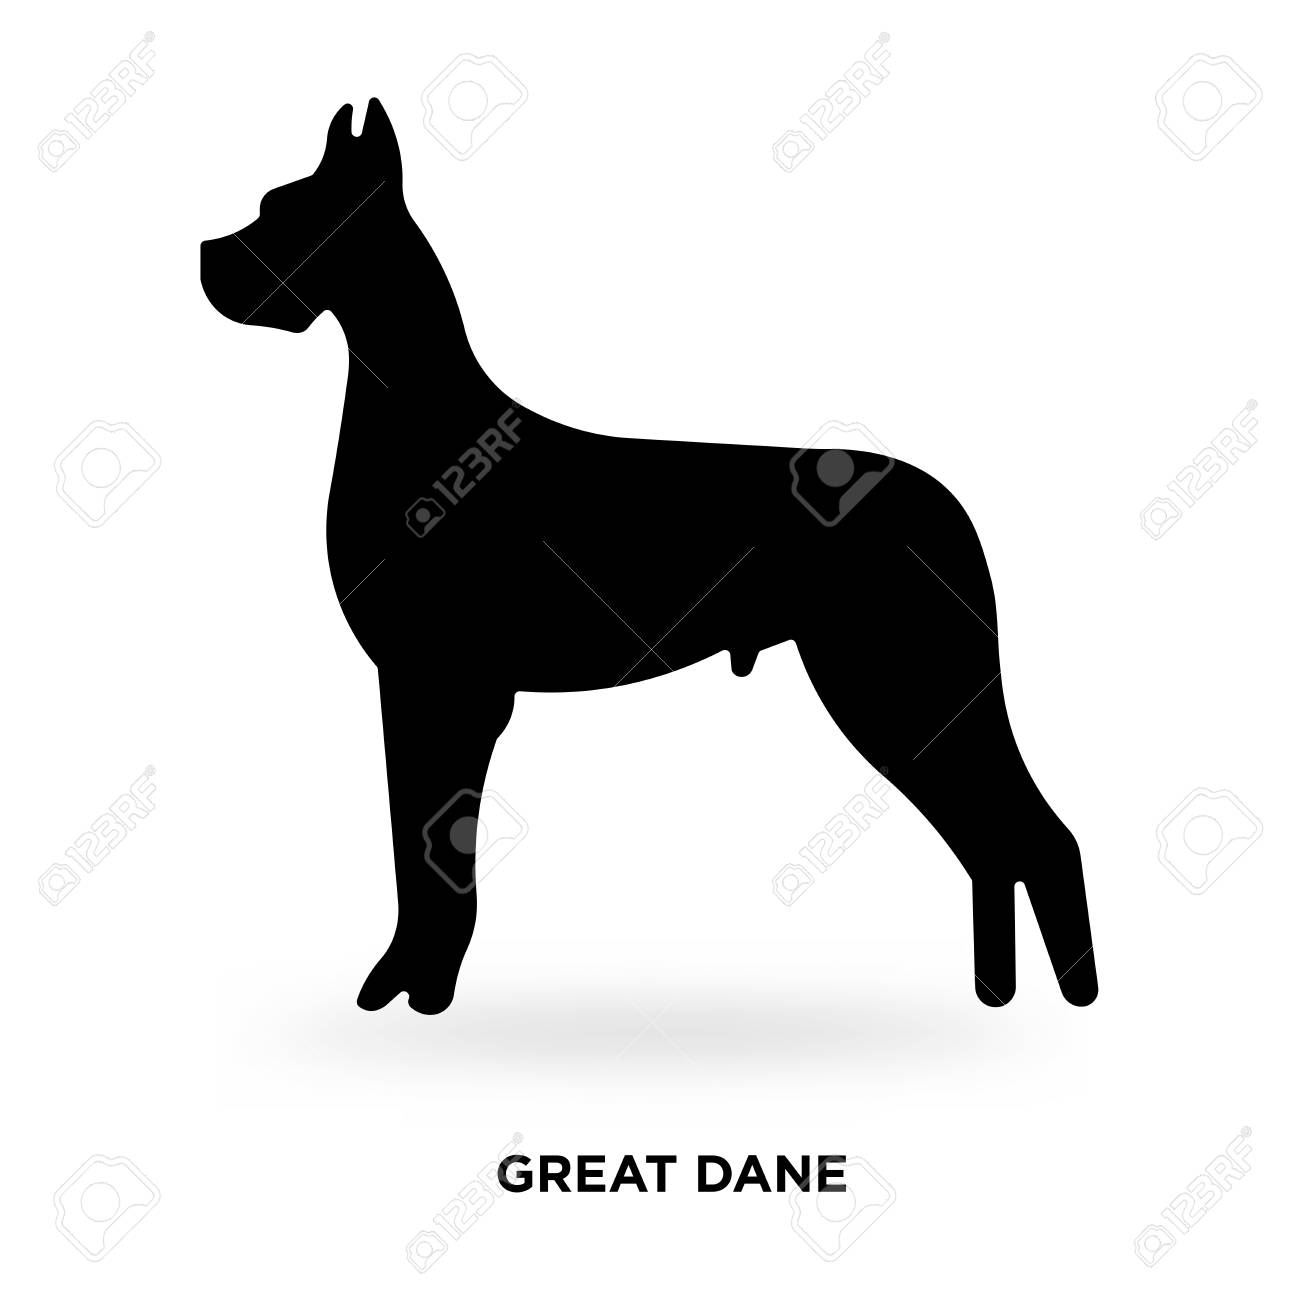 great dane silhouette Vector illustration..